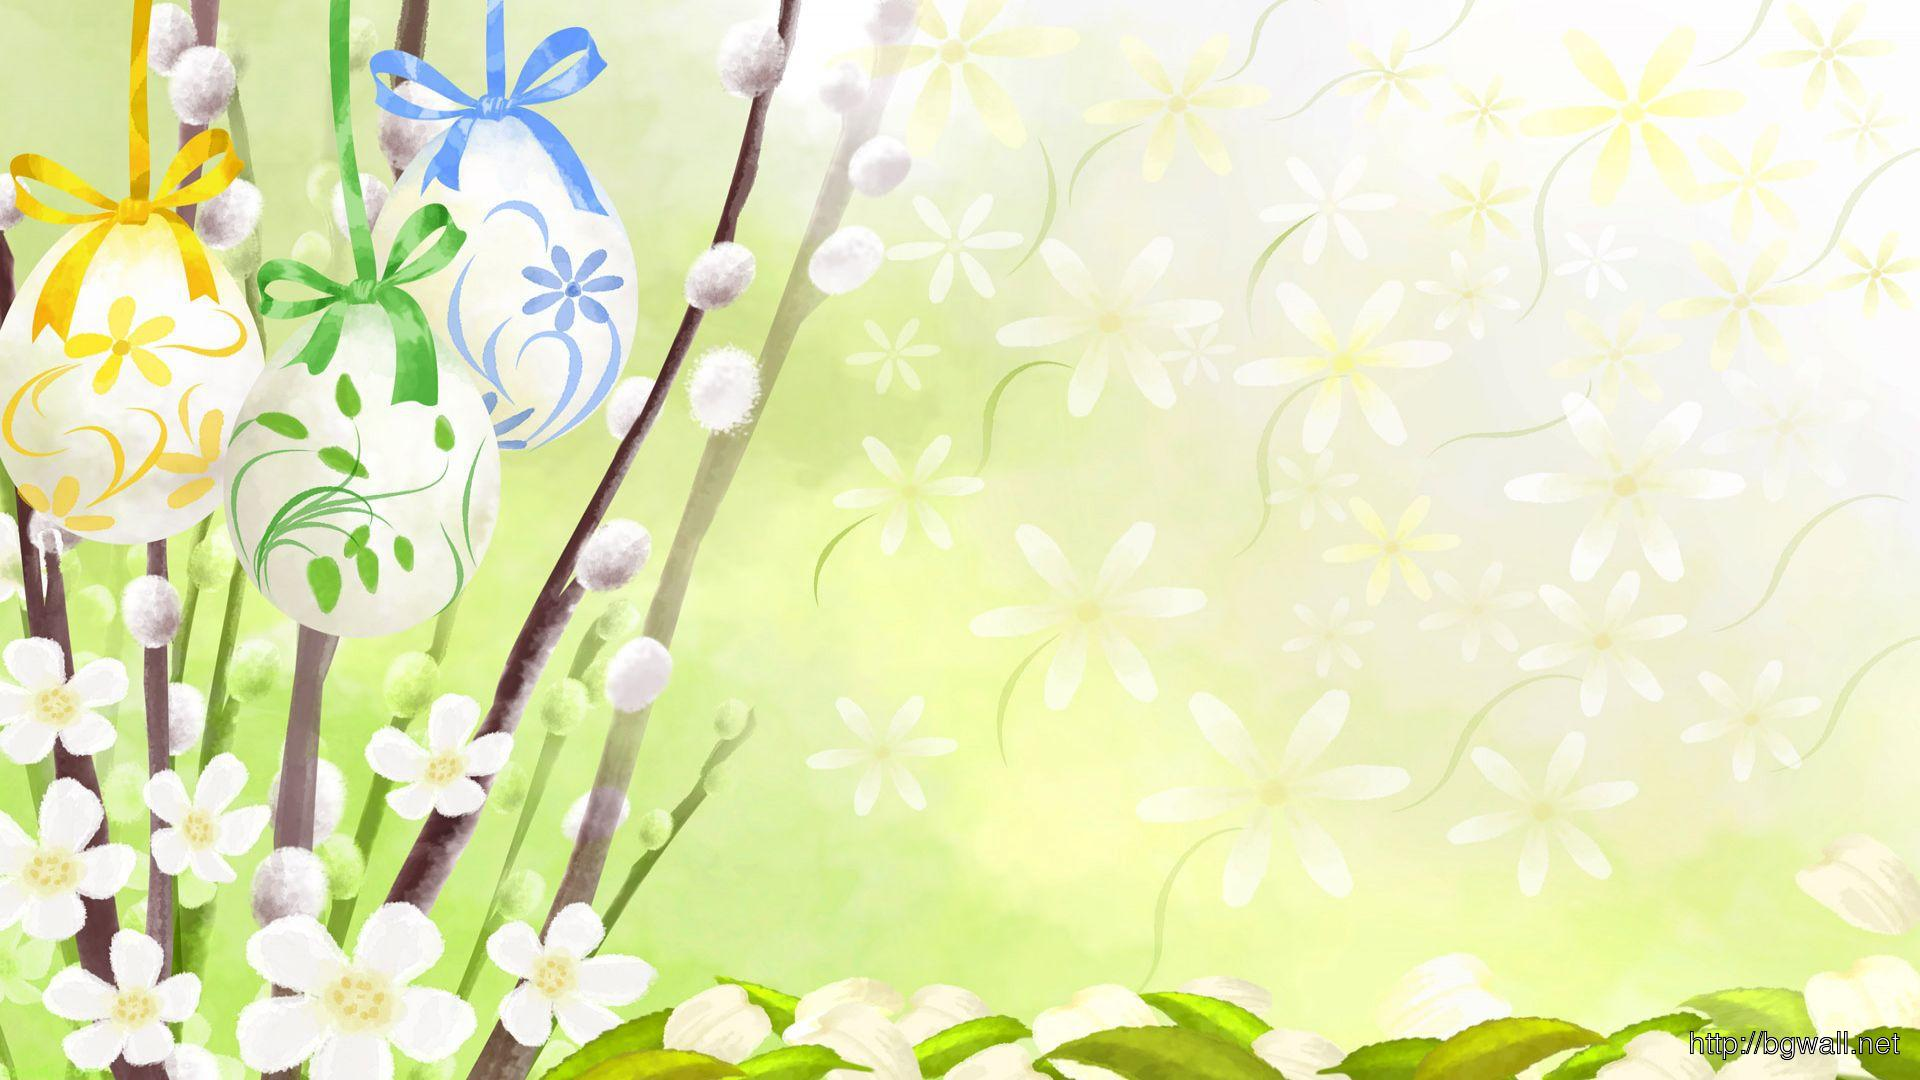 happy-easter-day-background-wallpaper